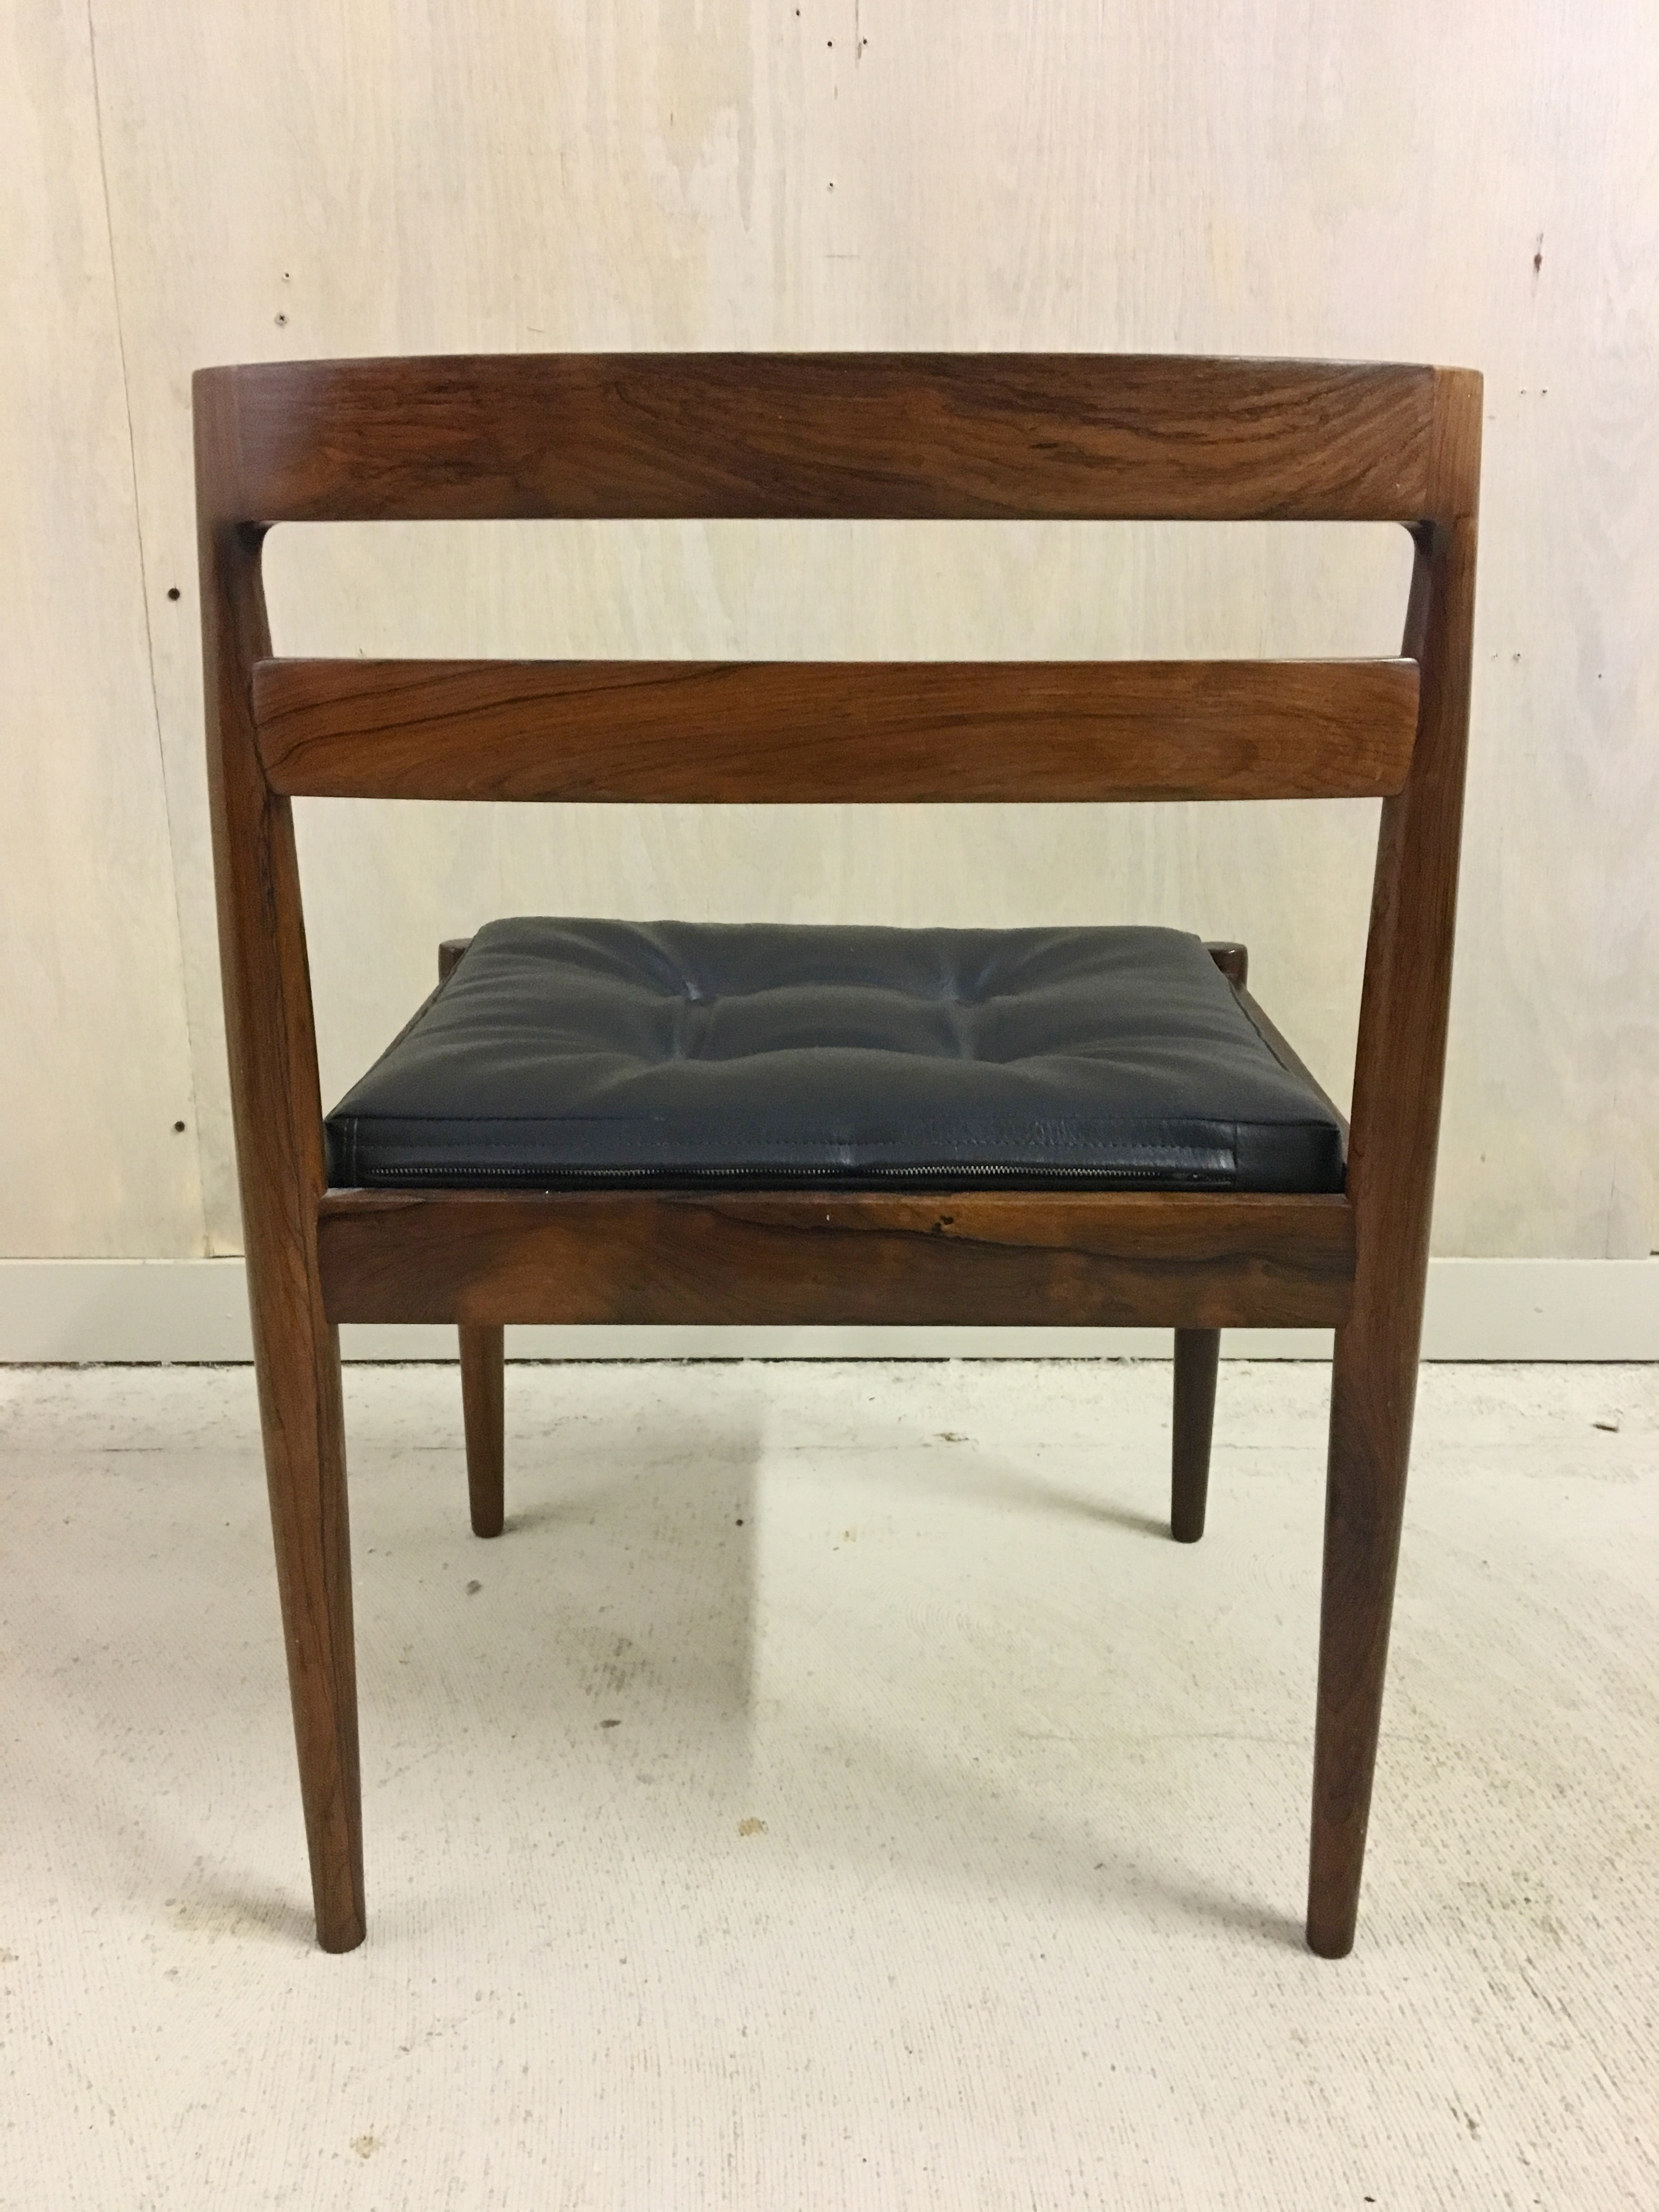 SALE - Kai Kristiansen Model 301 Rosewood Chair for Magnus Olesen